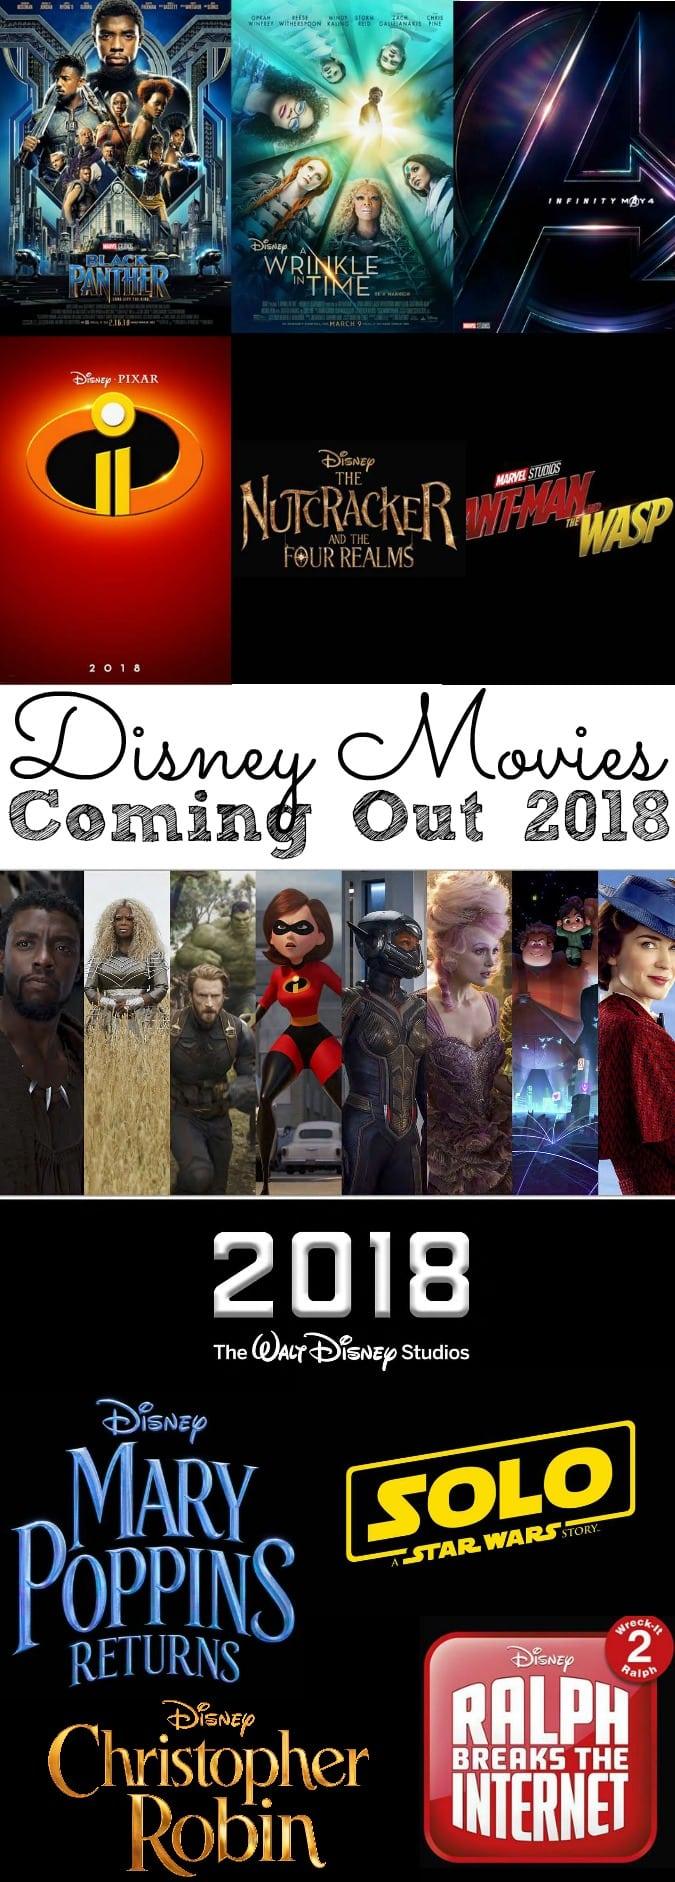 List of Disney Movies Coming Out in 2018 - simplytodaylife.com